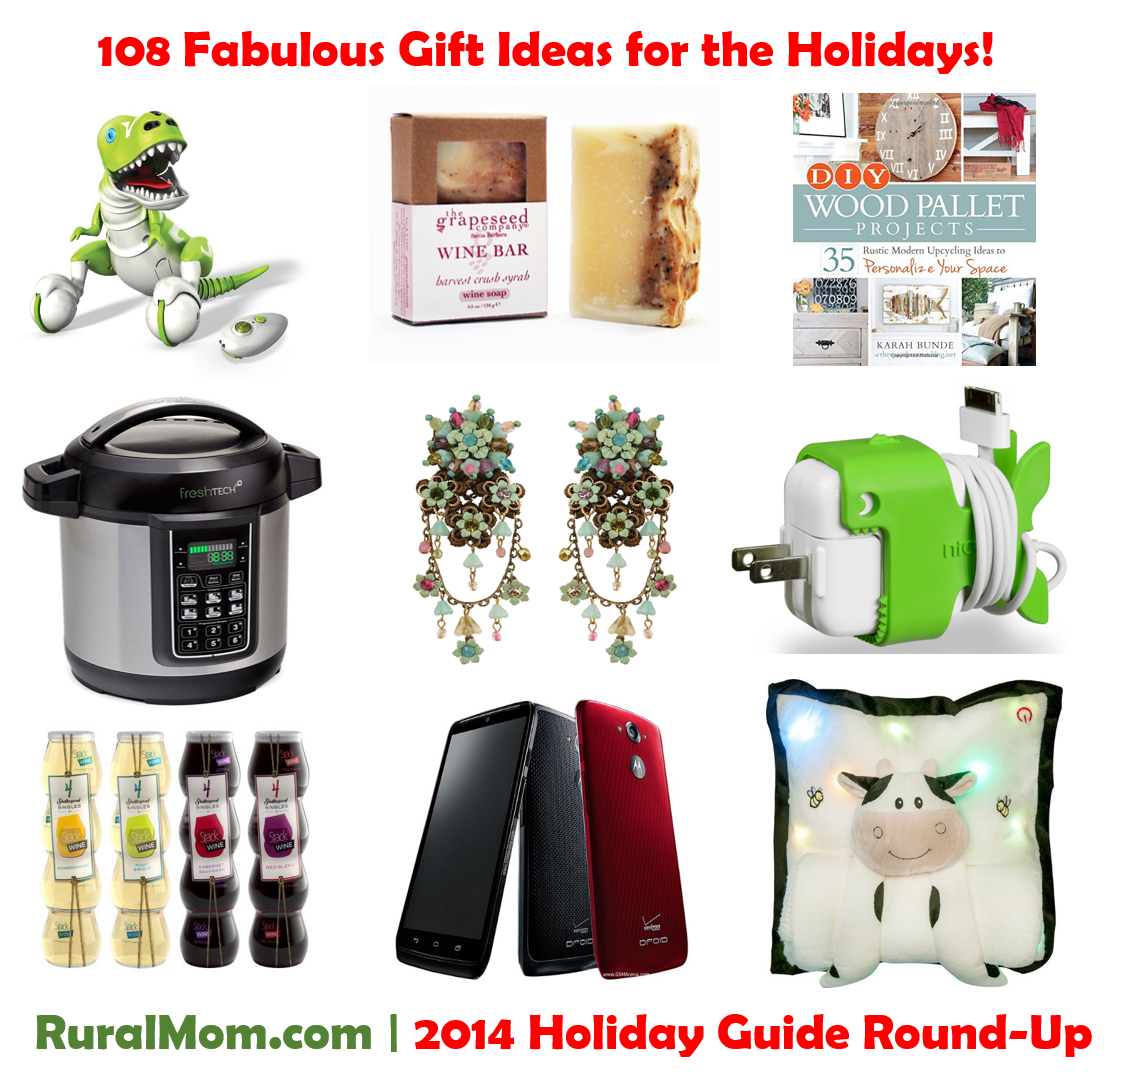 108 Fabulous Gift Ideas for the Holidays! Rural Mom 2014 Holiday Guide Round-Up